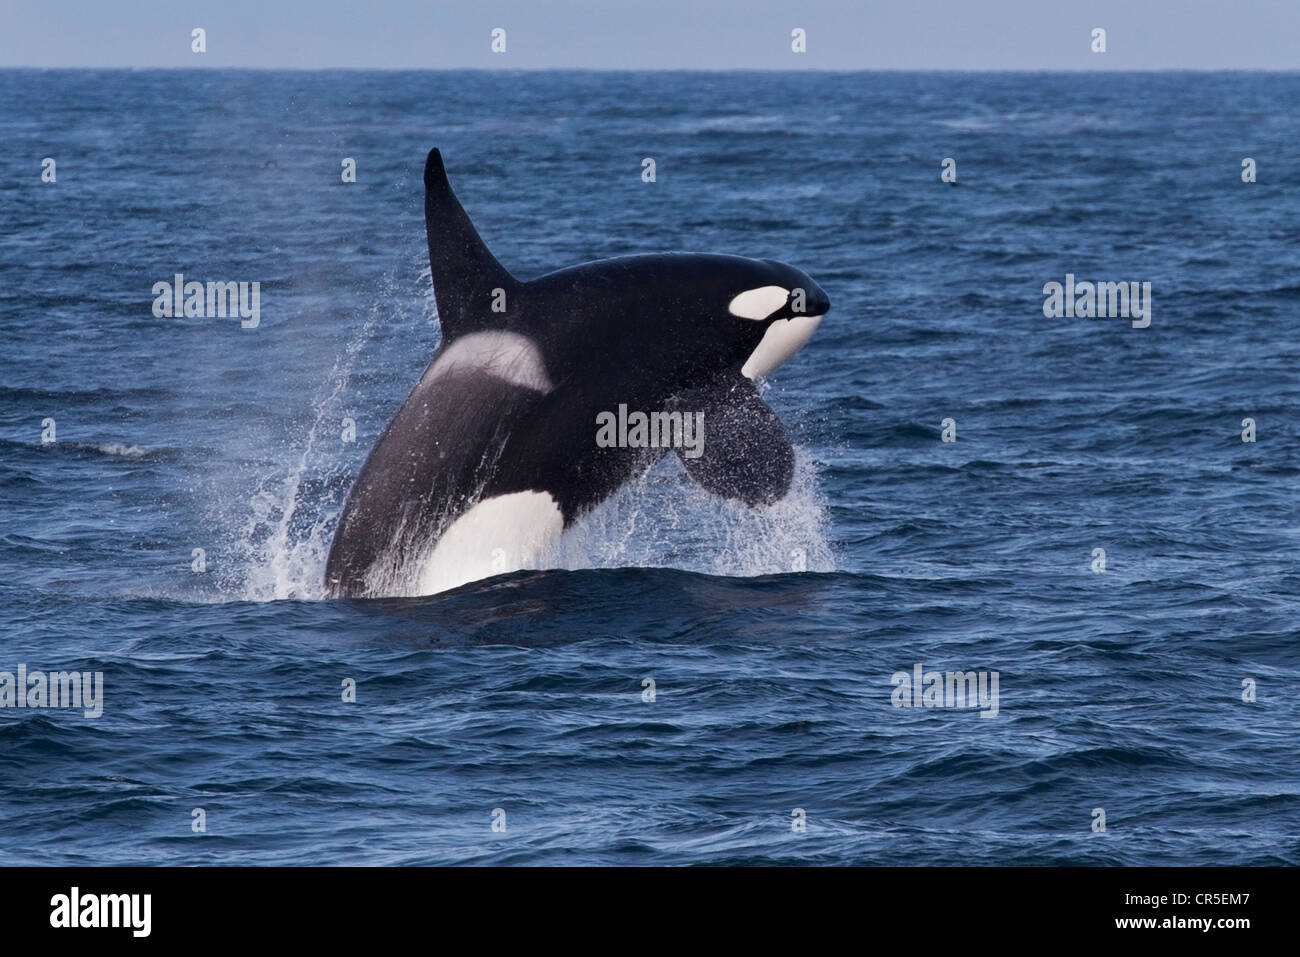 Transient Killer Whale/Orca (Orcinus orca). Large adult male breaching, Monterey, California, Pacific Ocean. - Stock Image